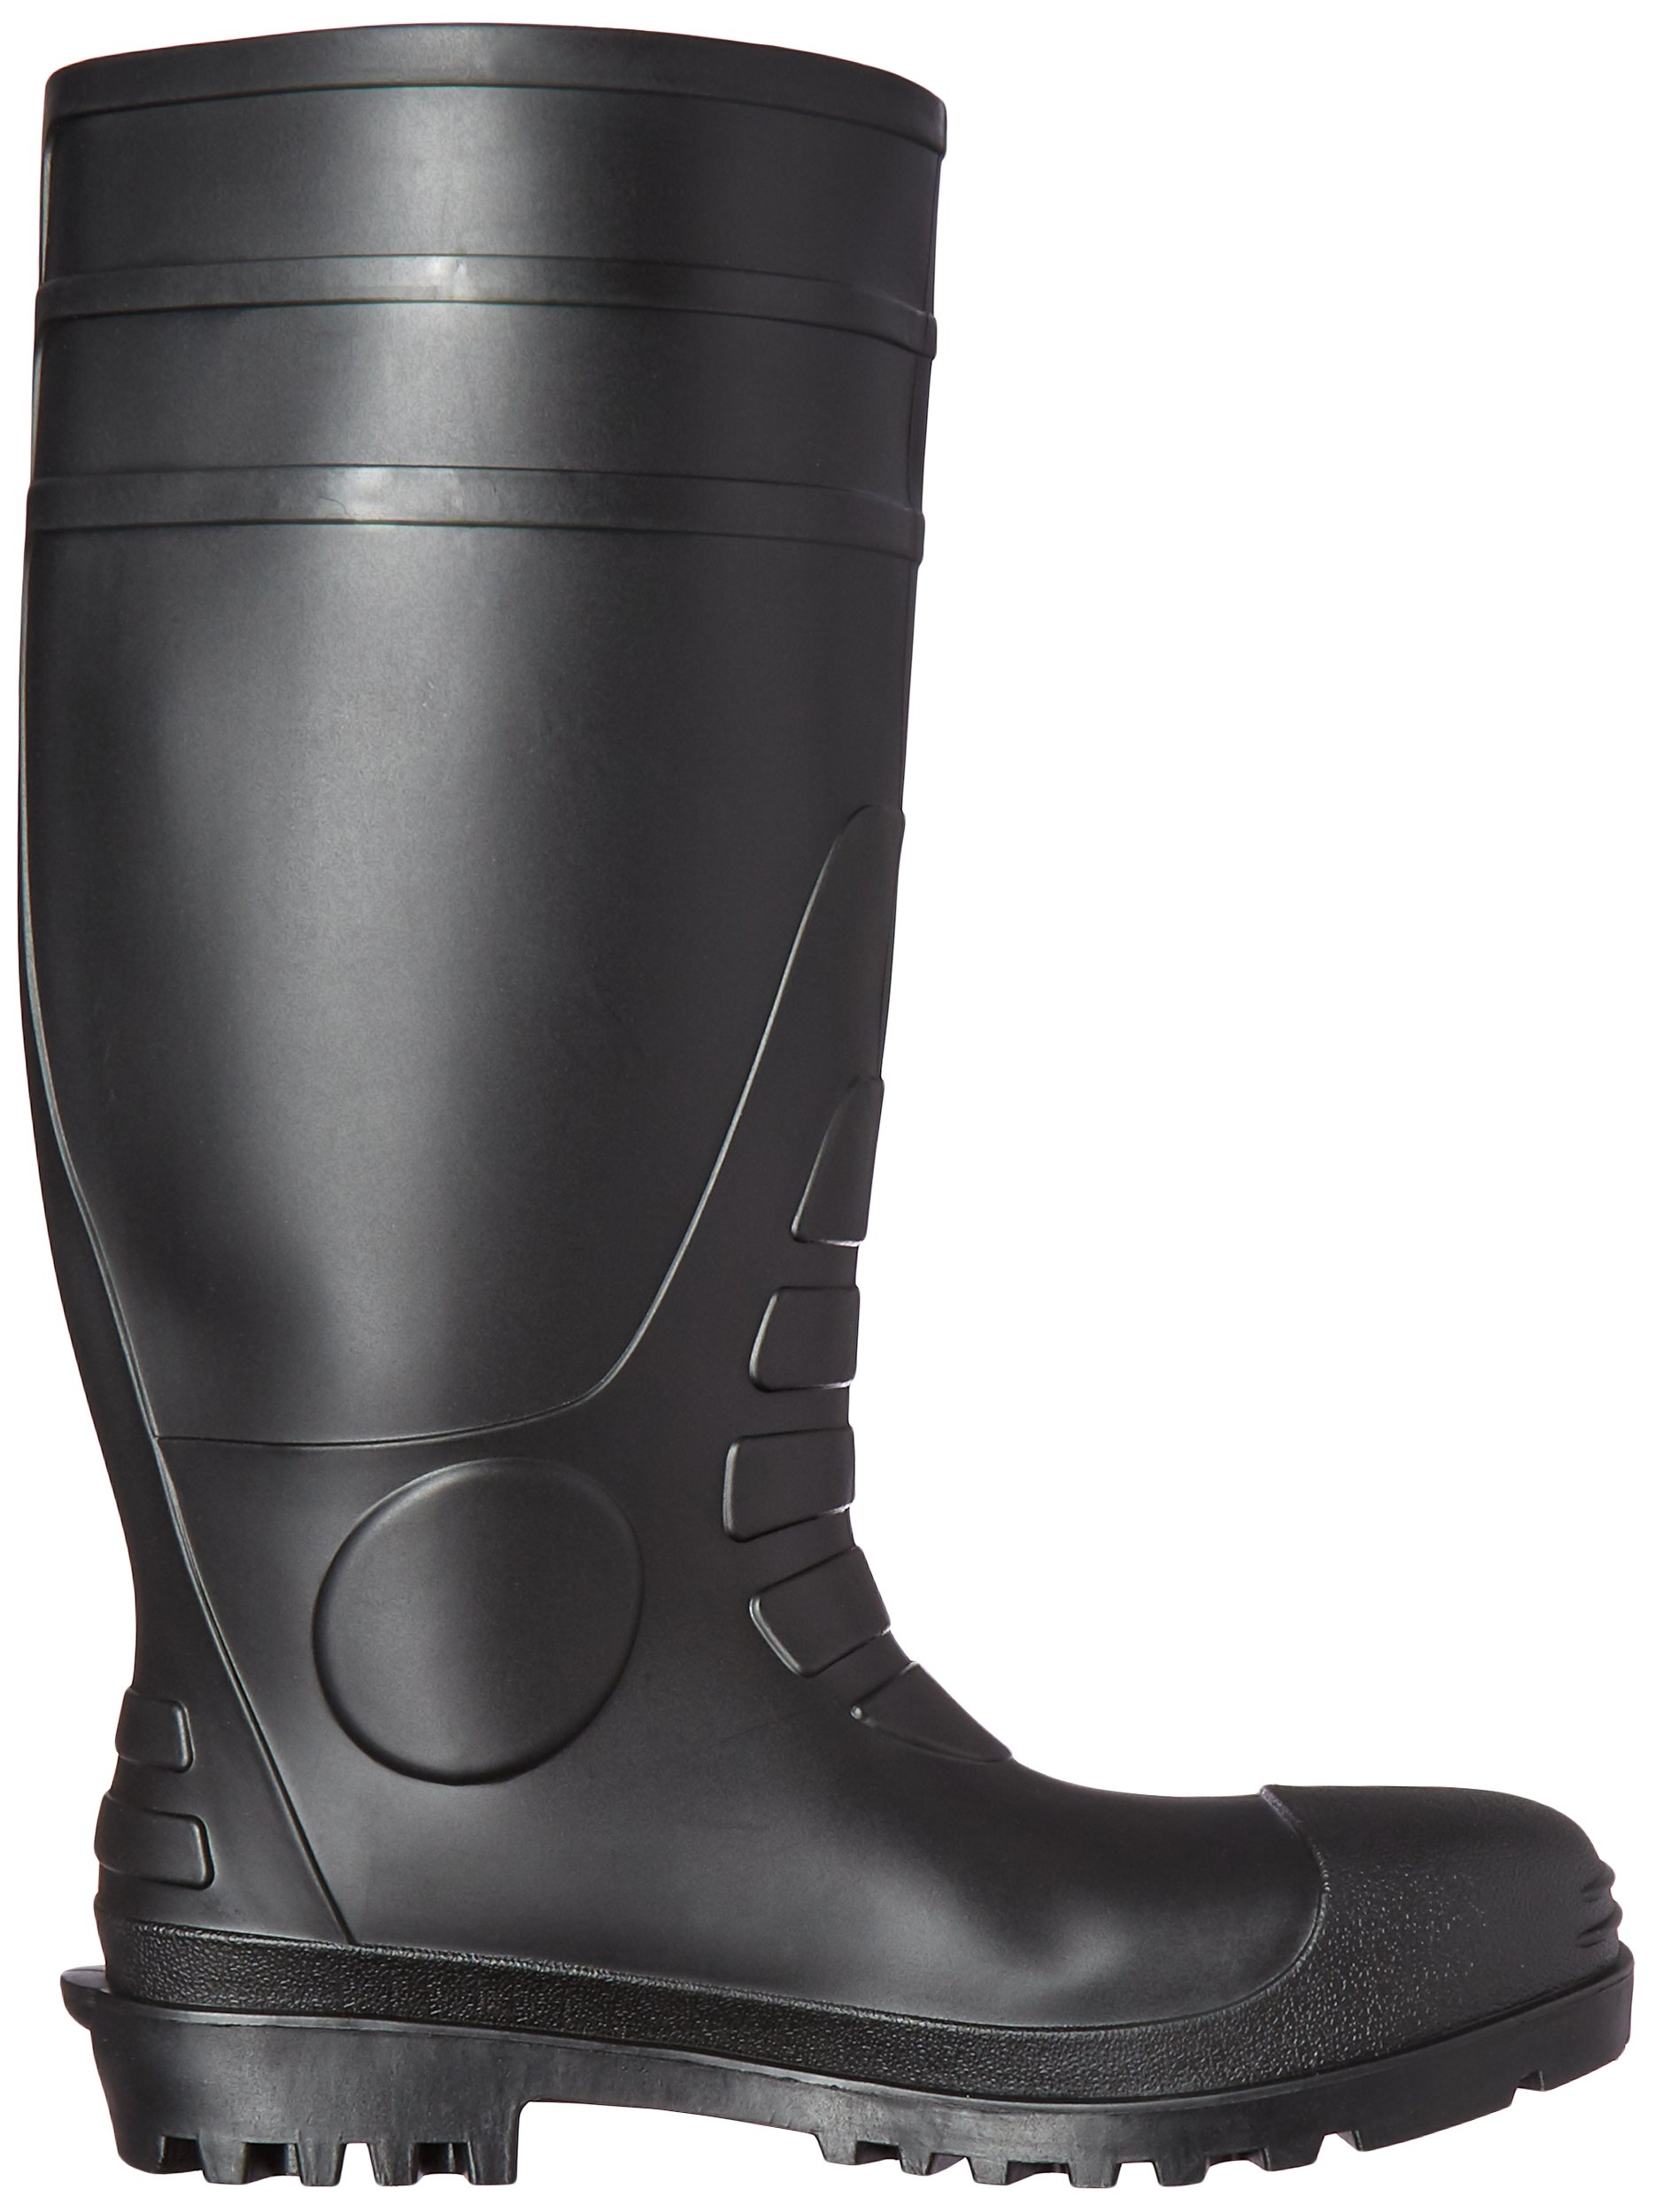 TINGLEY 31151 Economy SZ12 Kneed Boot for Agriculture, 15-Inch, Black by TINGLEY (Image #11)